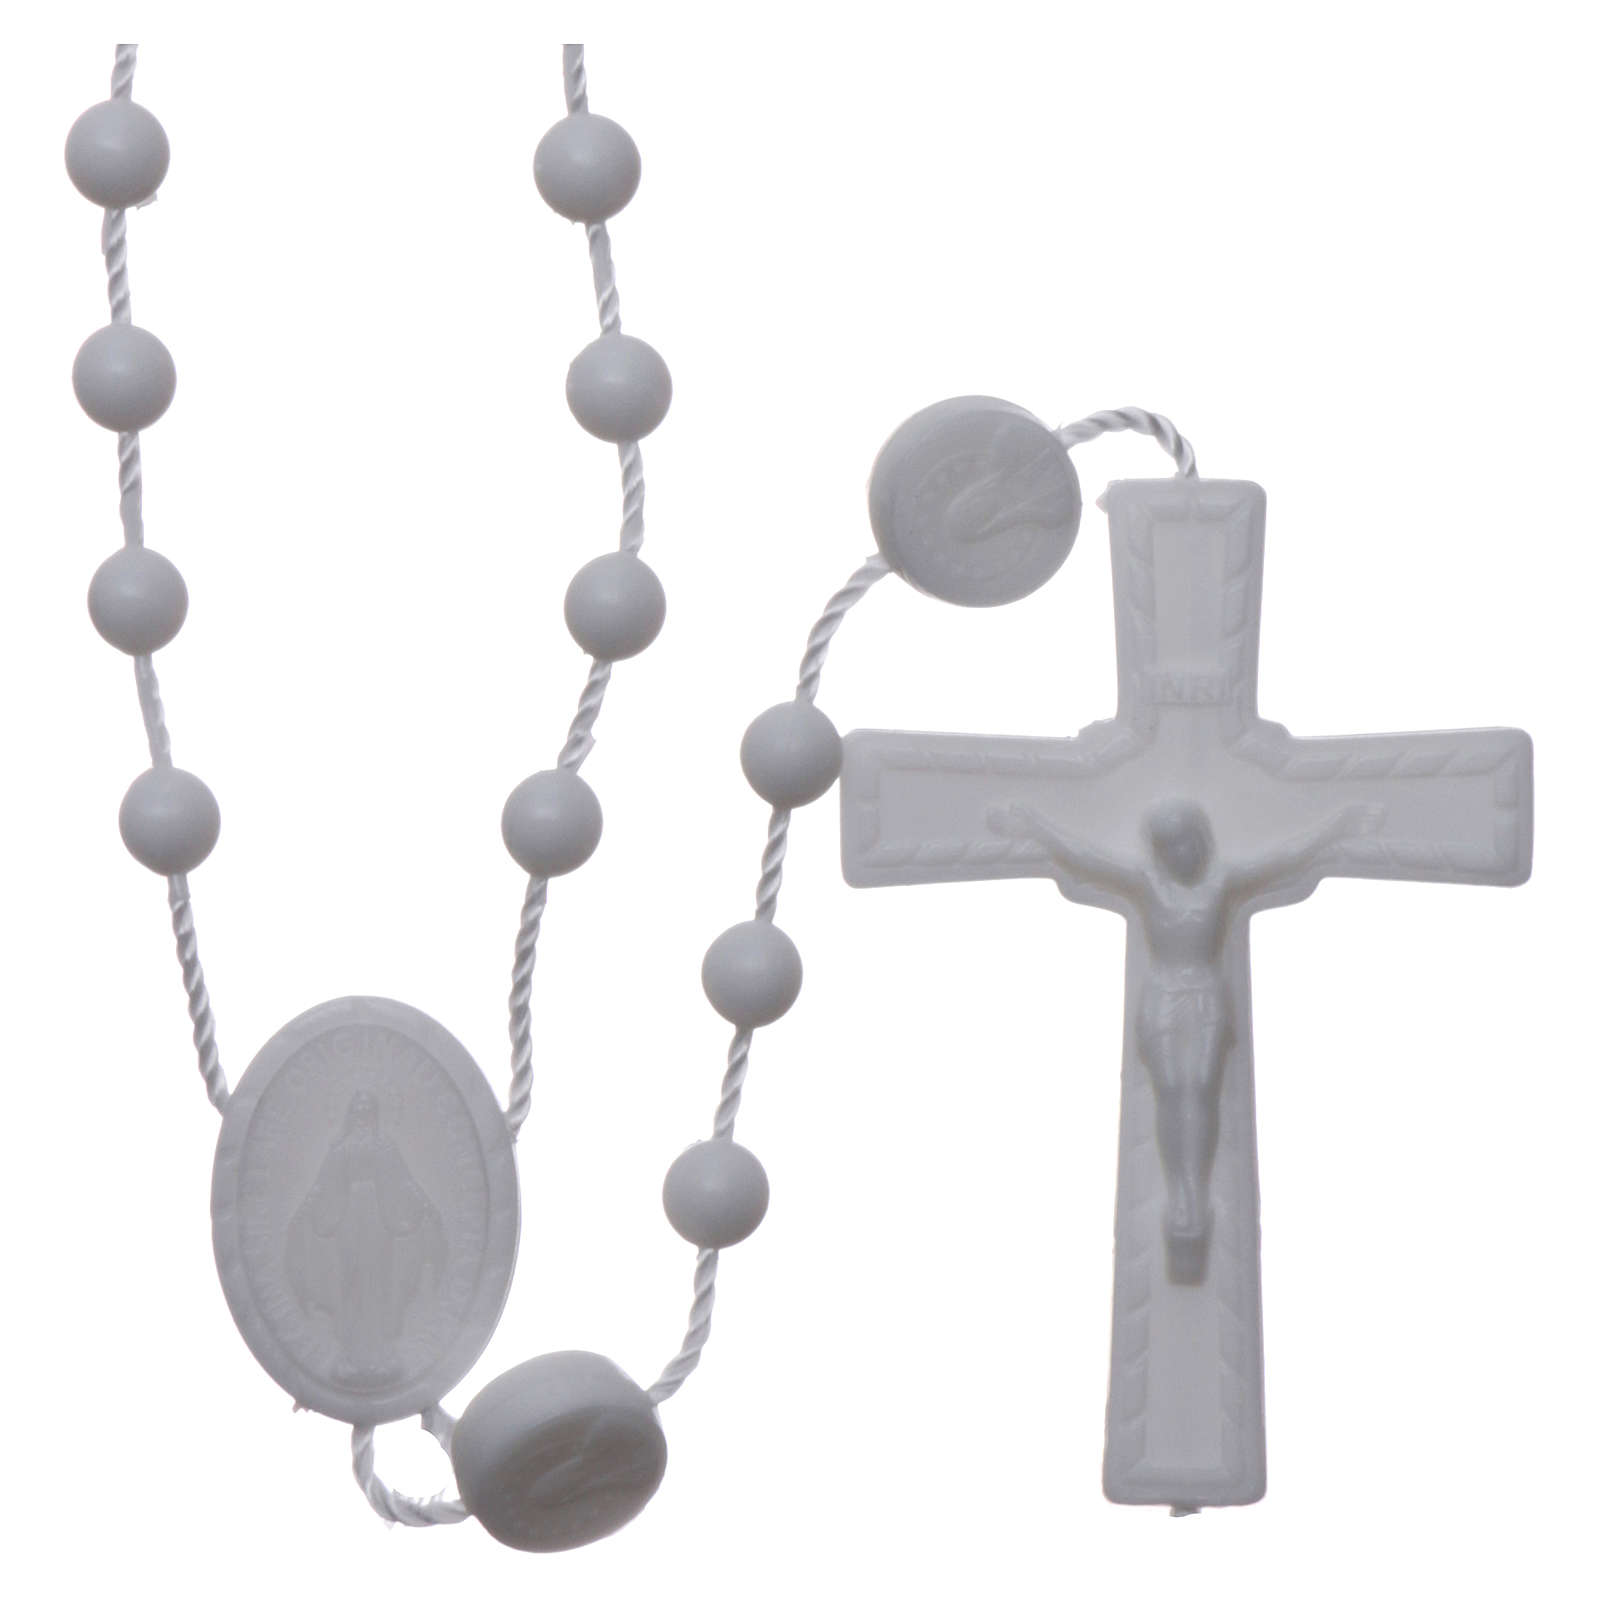 Nylon Our Lady of Miracles rosary in white color 4